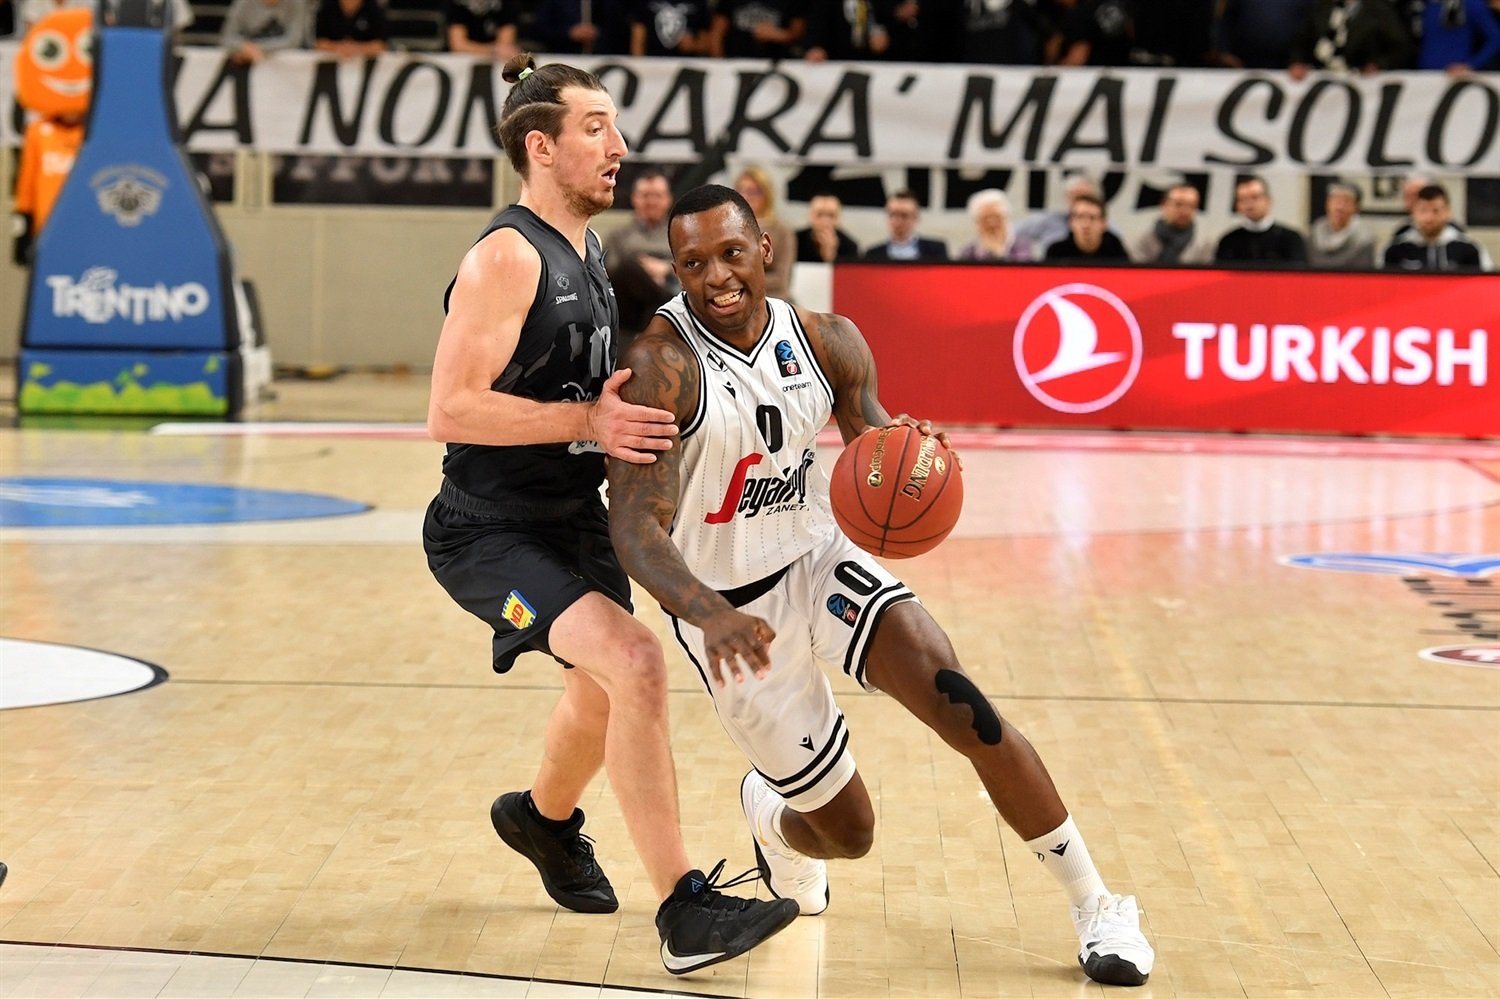 Frank Gaines - Segafredo Virtus Bologna (photo Trento) - EC19